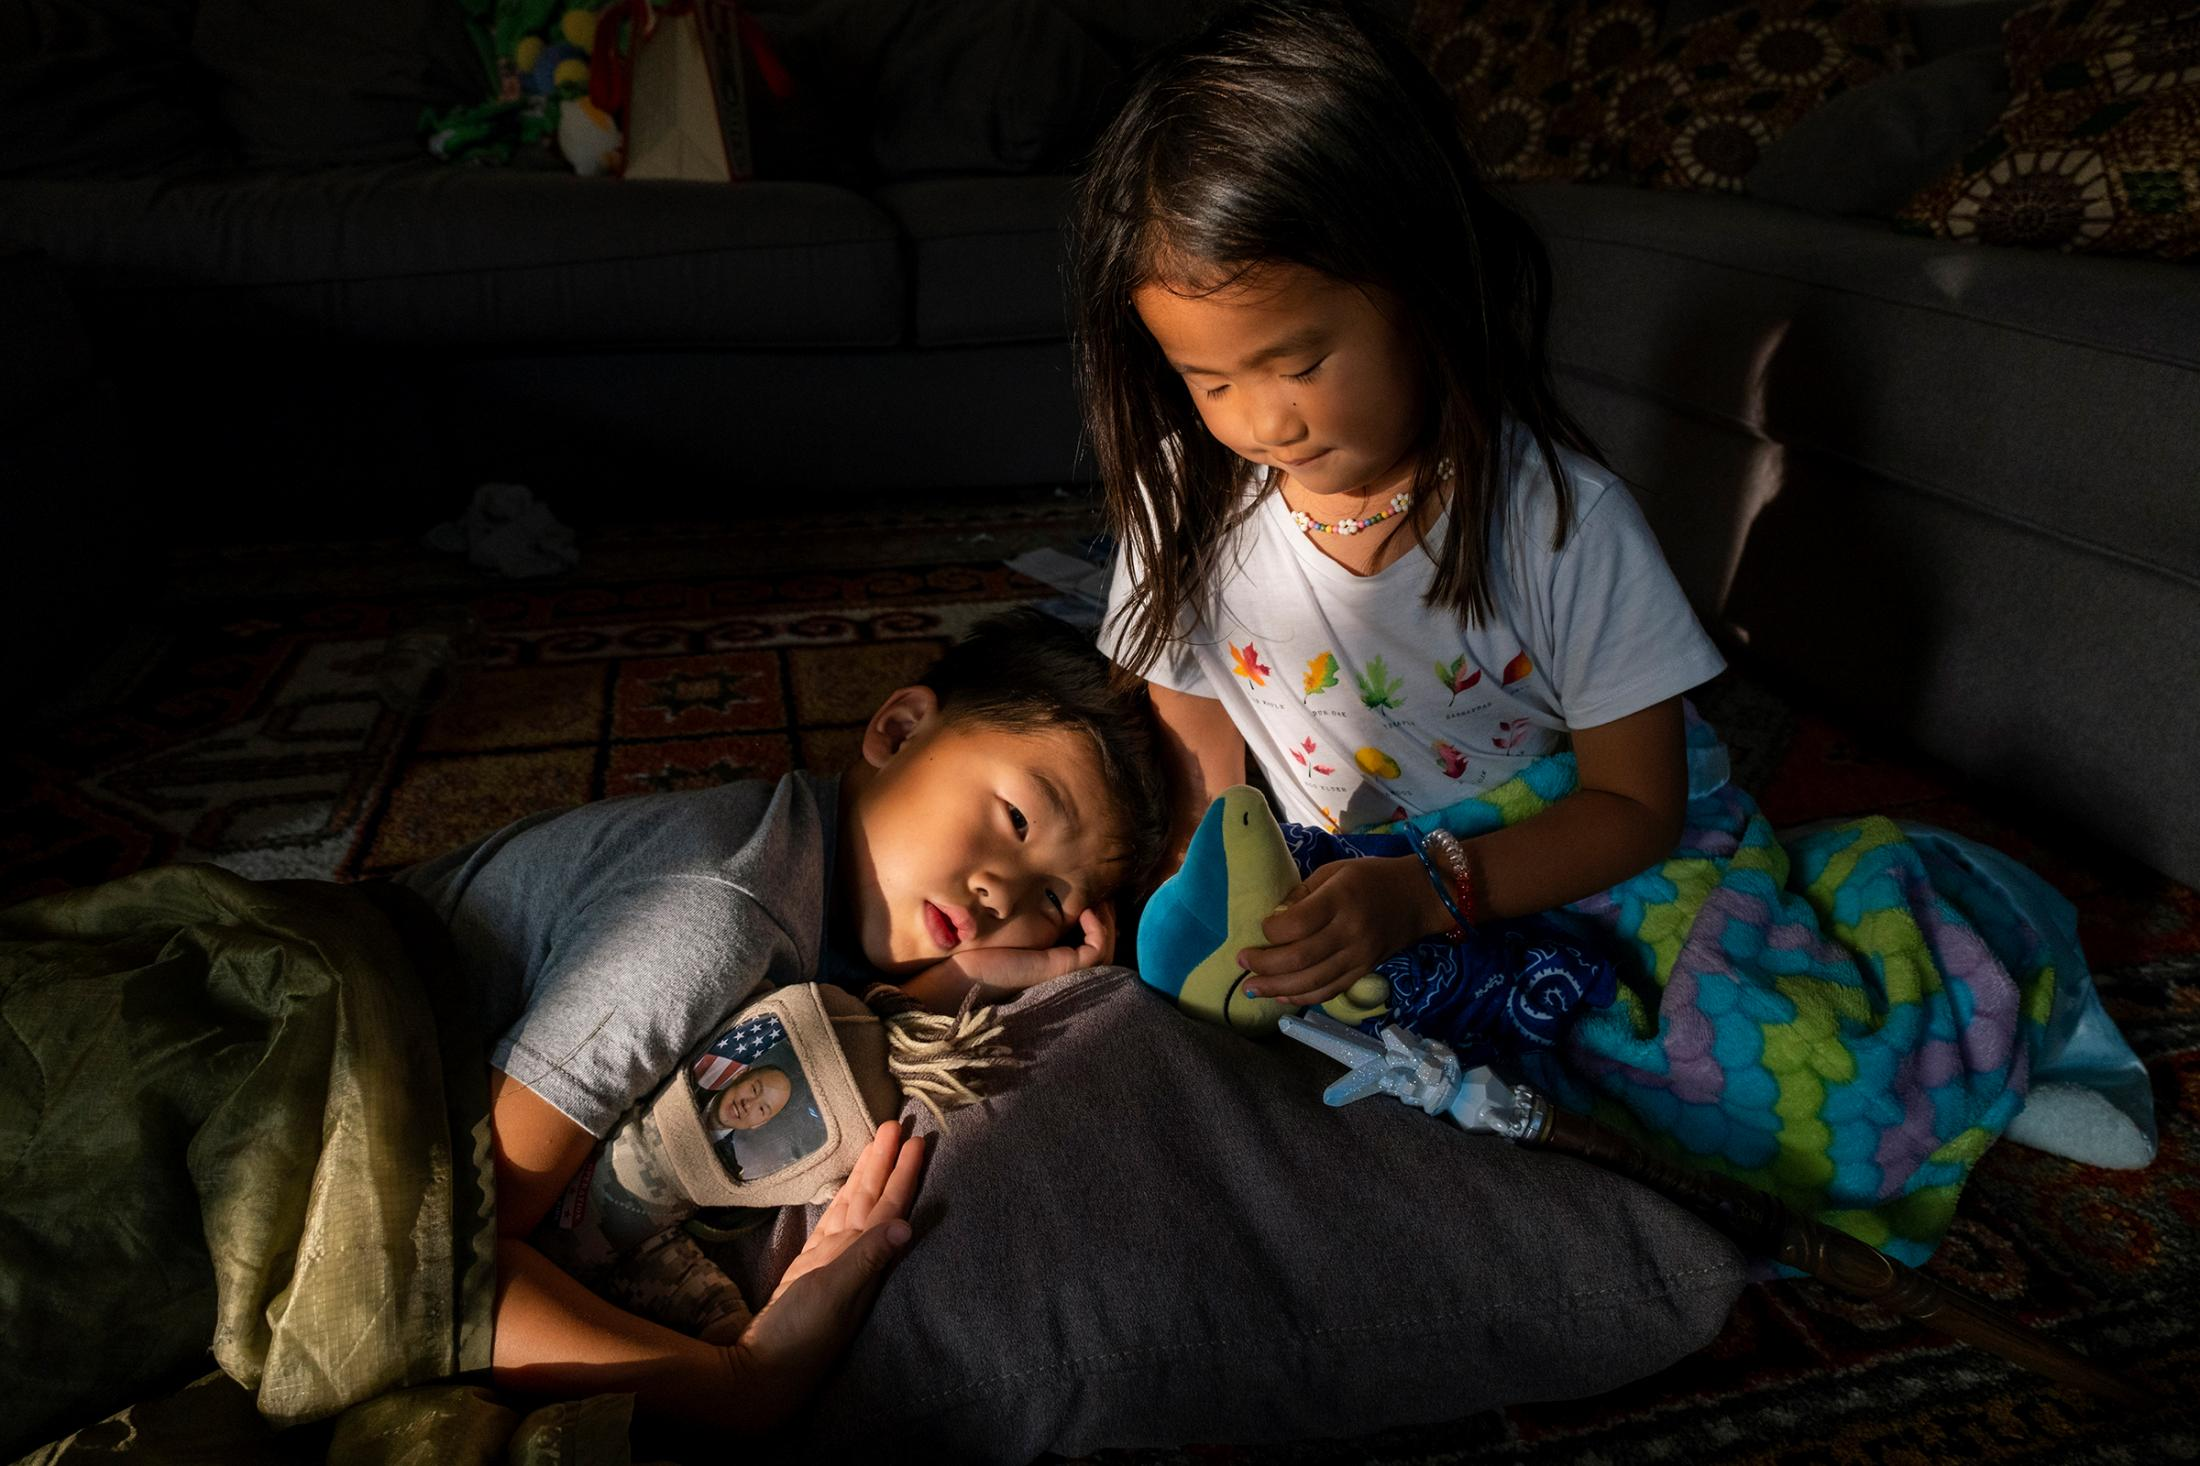 Teo holds a doll that has a photo of John inserted in a sleeve, while Mila takes care of her stuffed animal. PHOTOGRAPH BY ARIN YOON